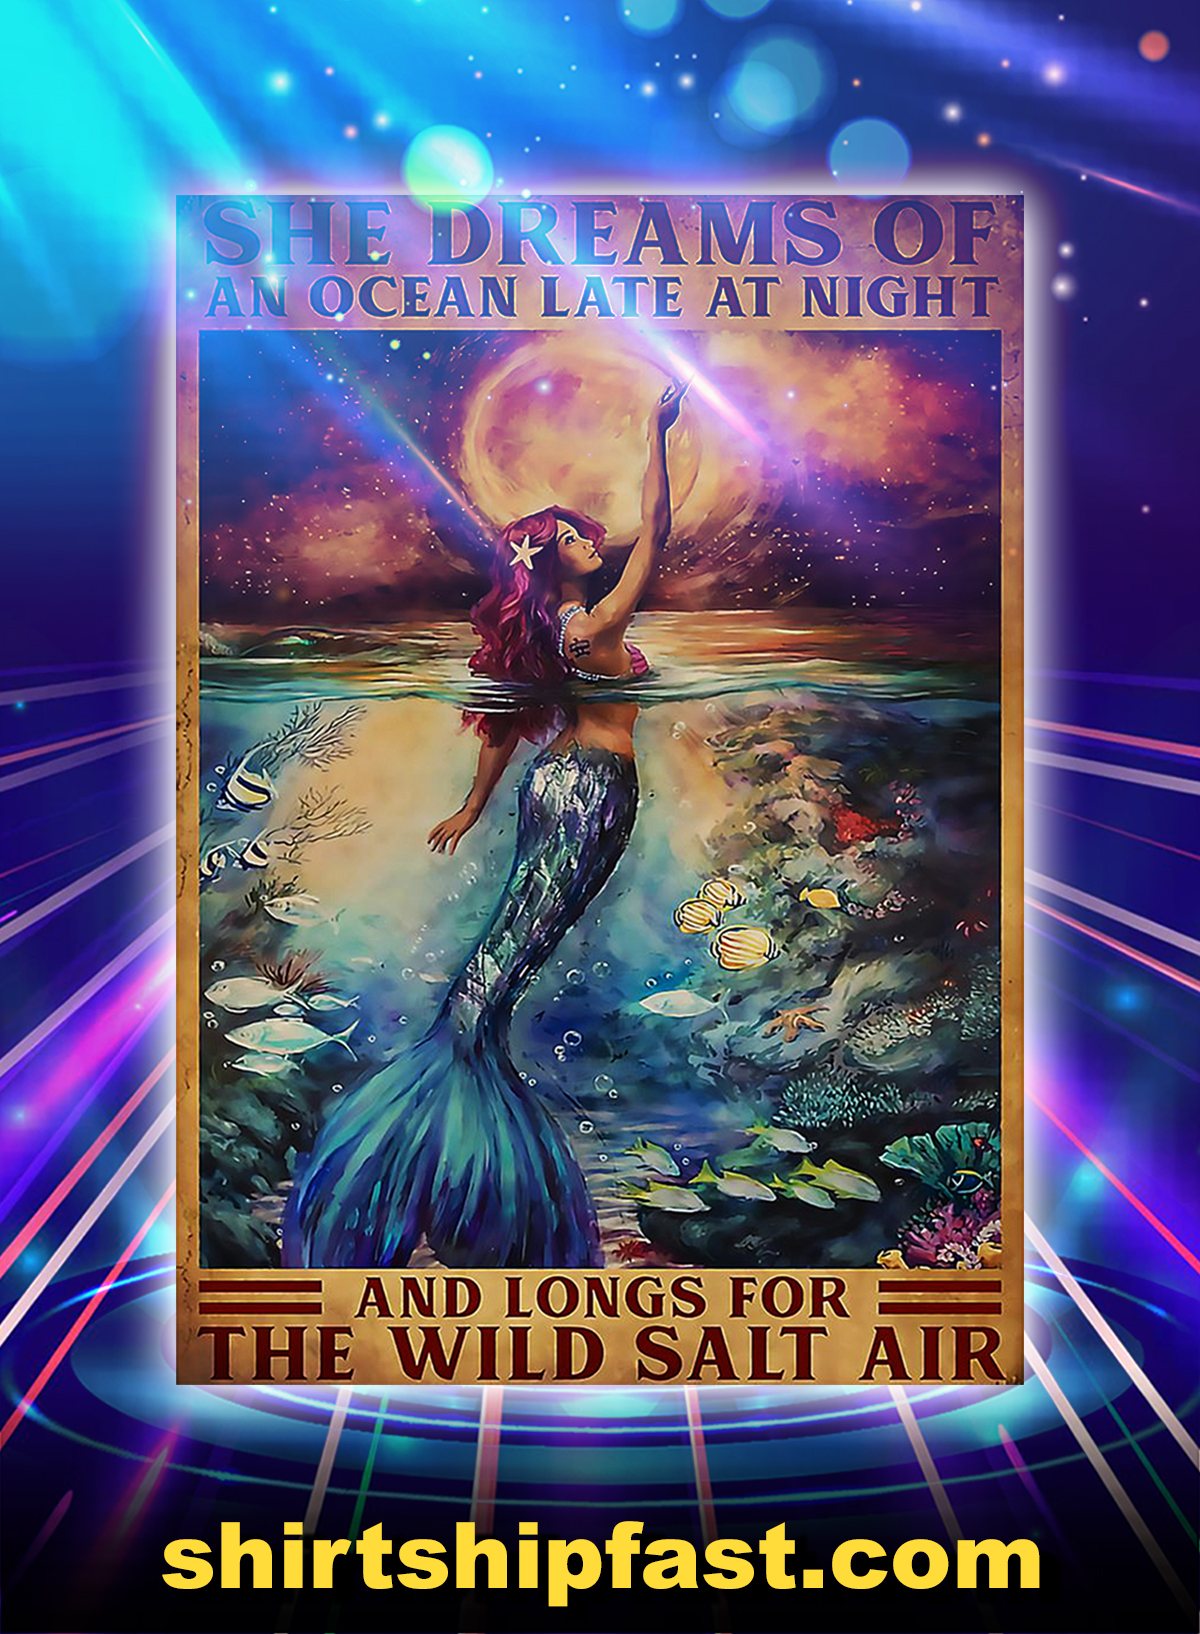 Mermaid she dreams of an ocean late at night and longs for the wild salt air poster - A1